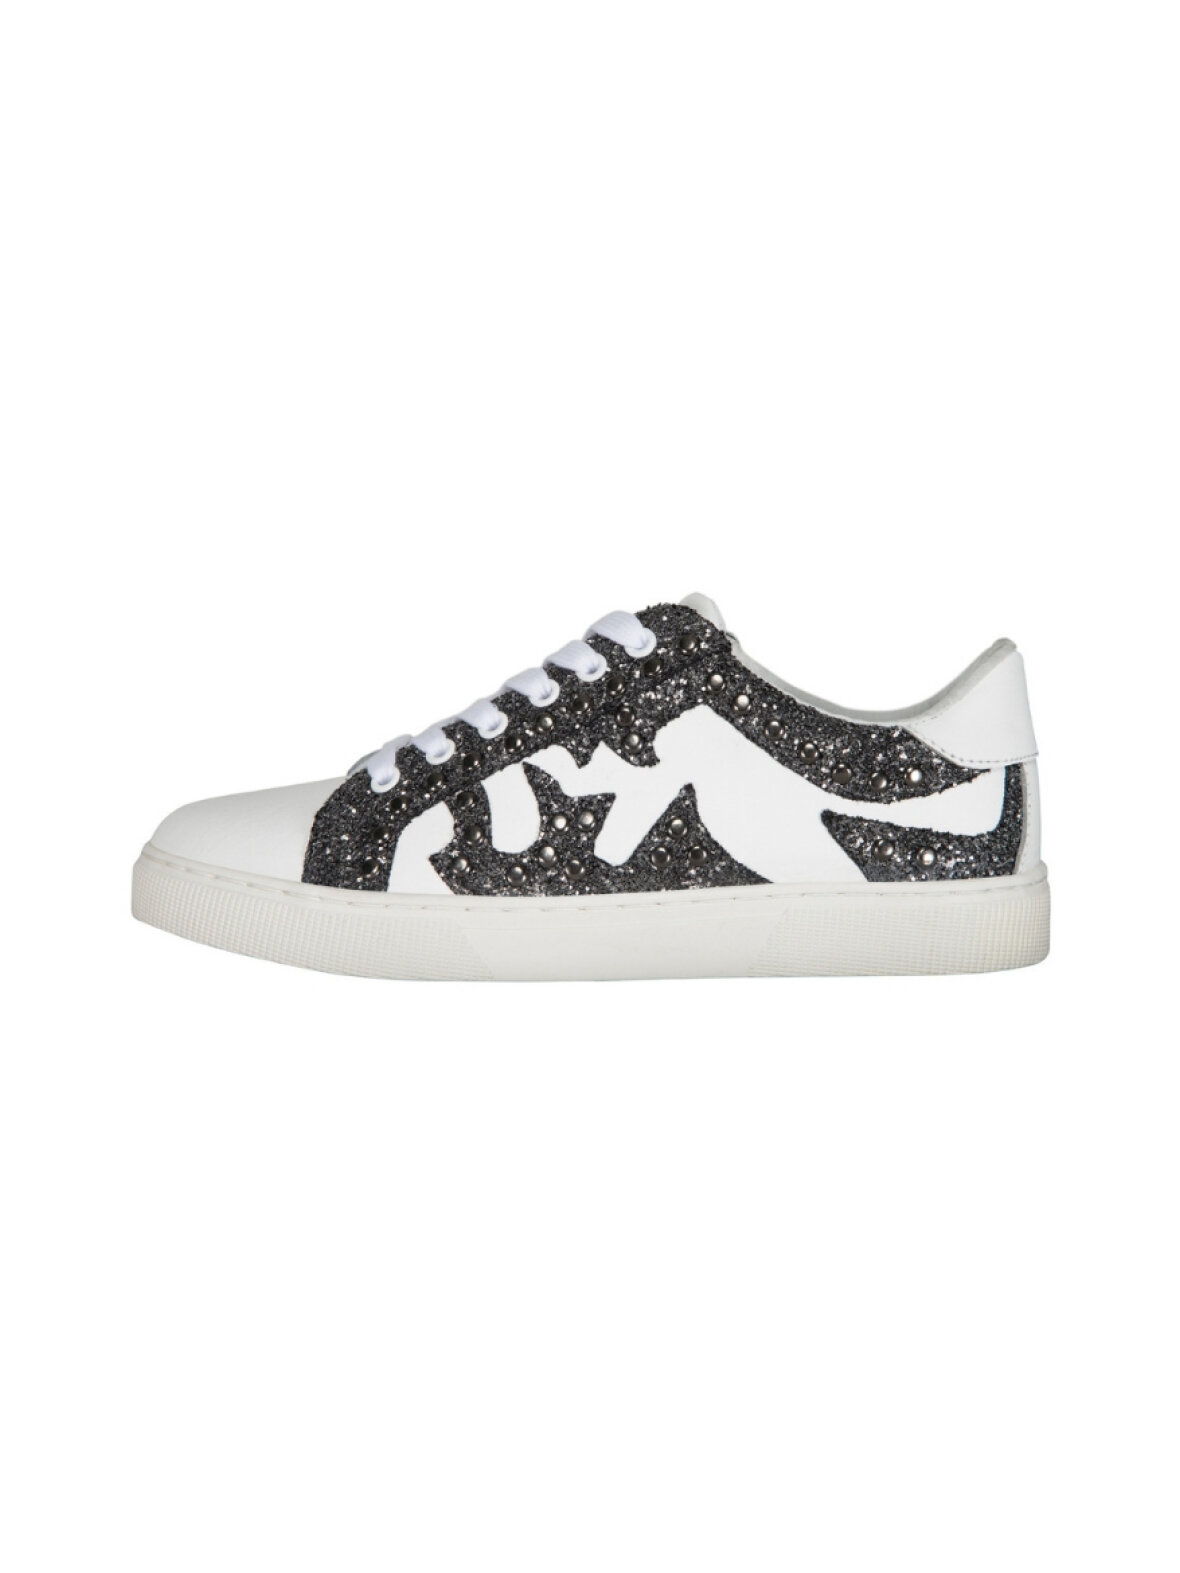 b21ae47f151c A poke - Sofie Schnoor Shoe Sneaker w. application